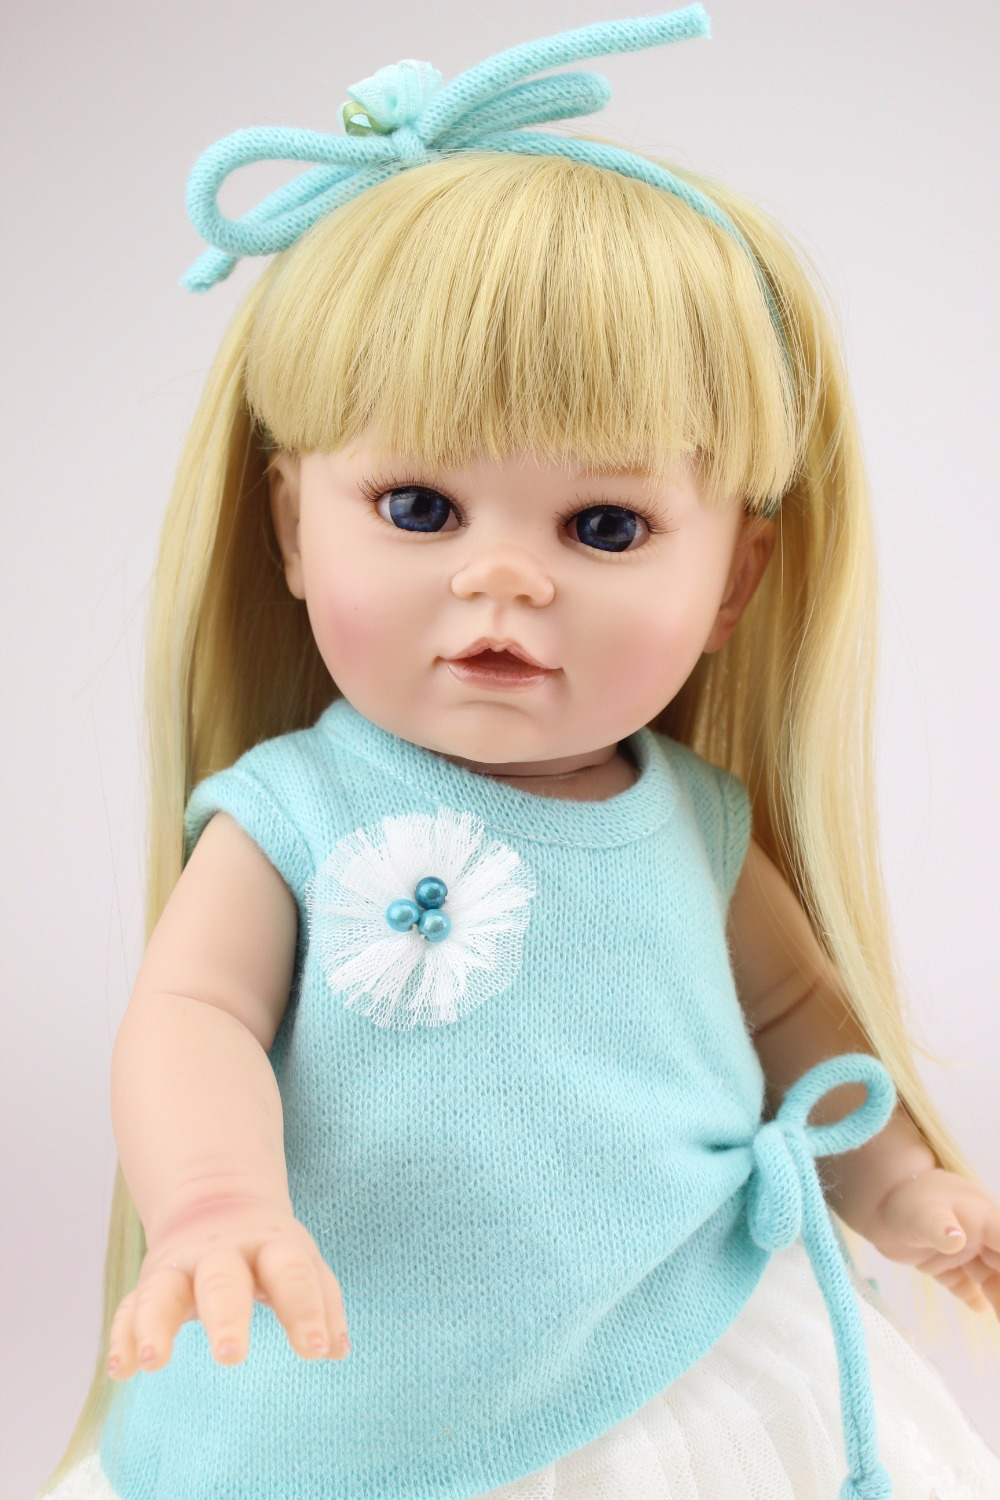 New Style 16 inches Baby Doll Fat American Girl Design Reborn Living doll Soft Solid Silicone Toys Free Shippinh new 23 inches lm230wf5 tld1 1920 x1080 lm230wf5 tld1 lm230wf5tld1 tld2